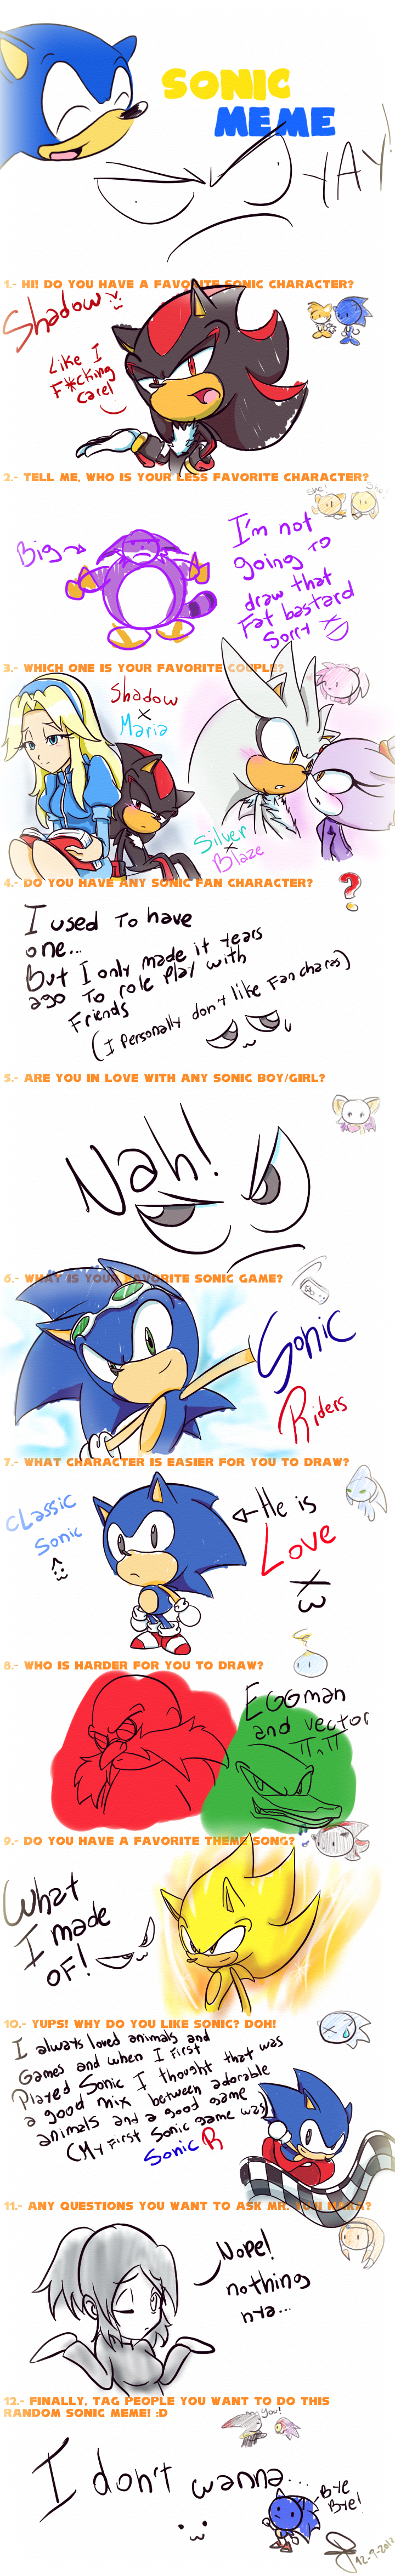 idol3341 Sonic meme by idolnya